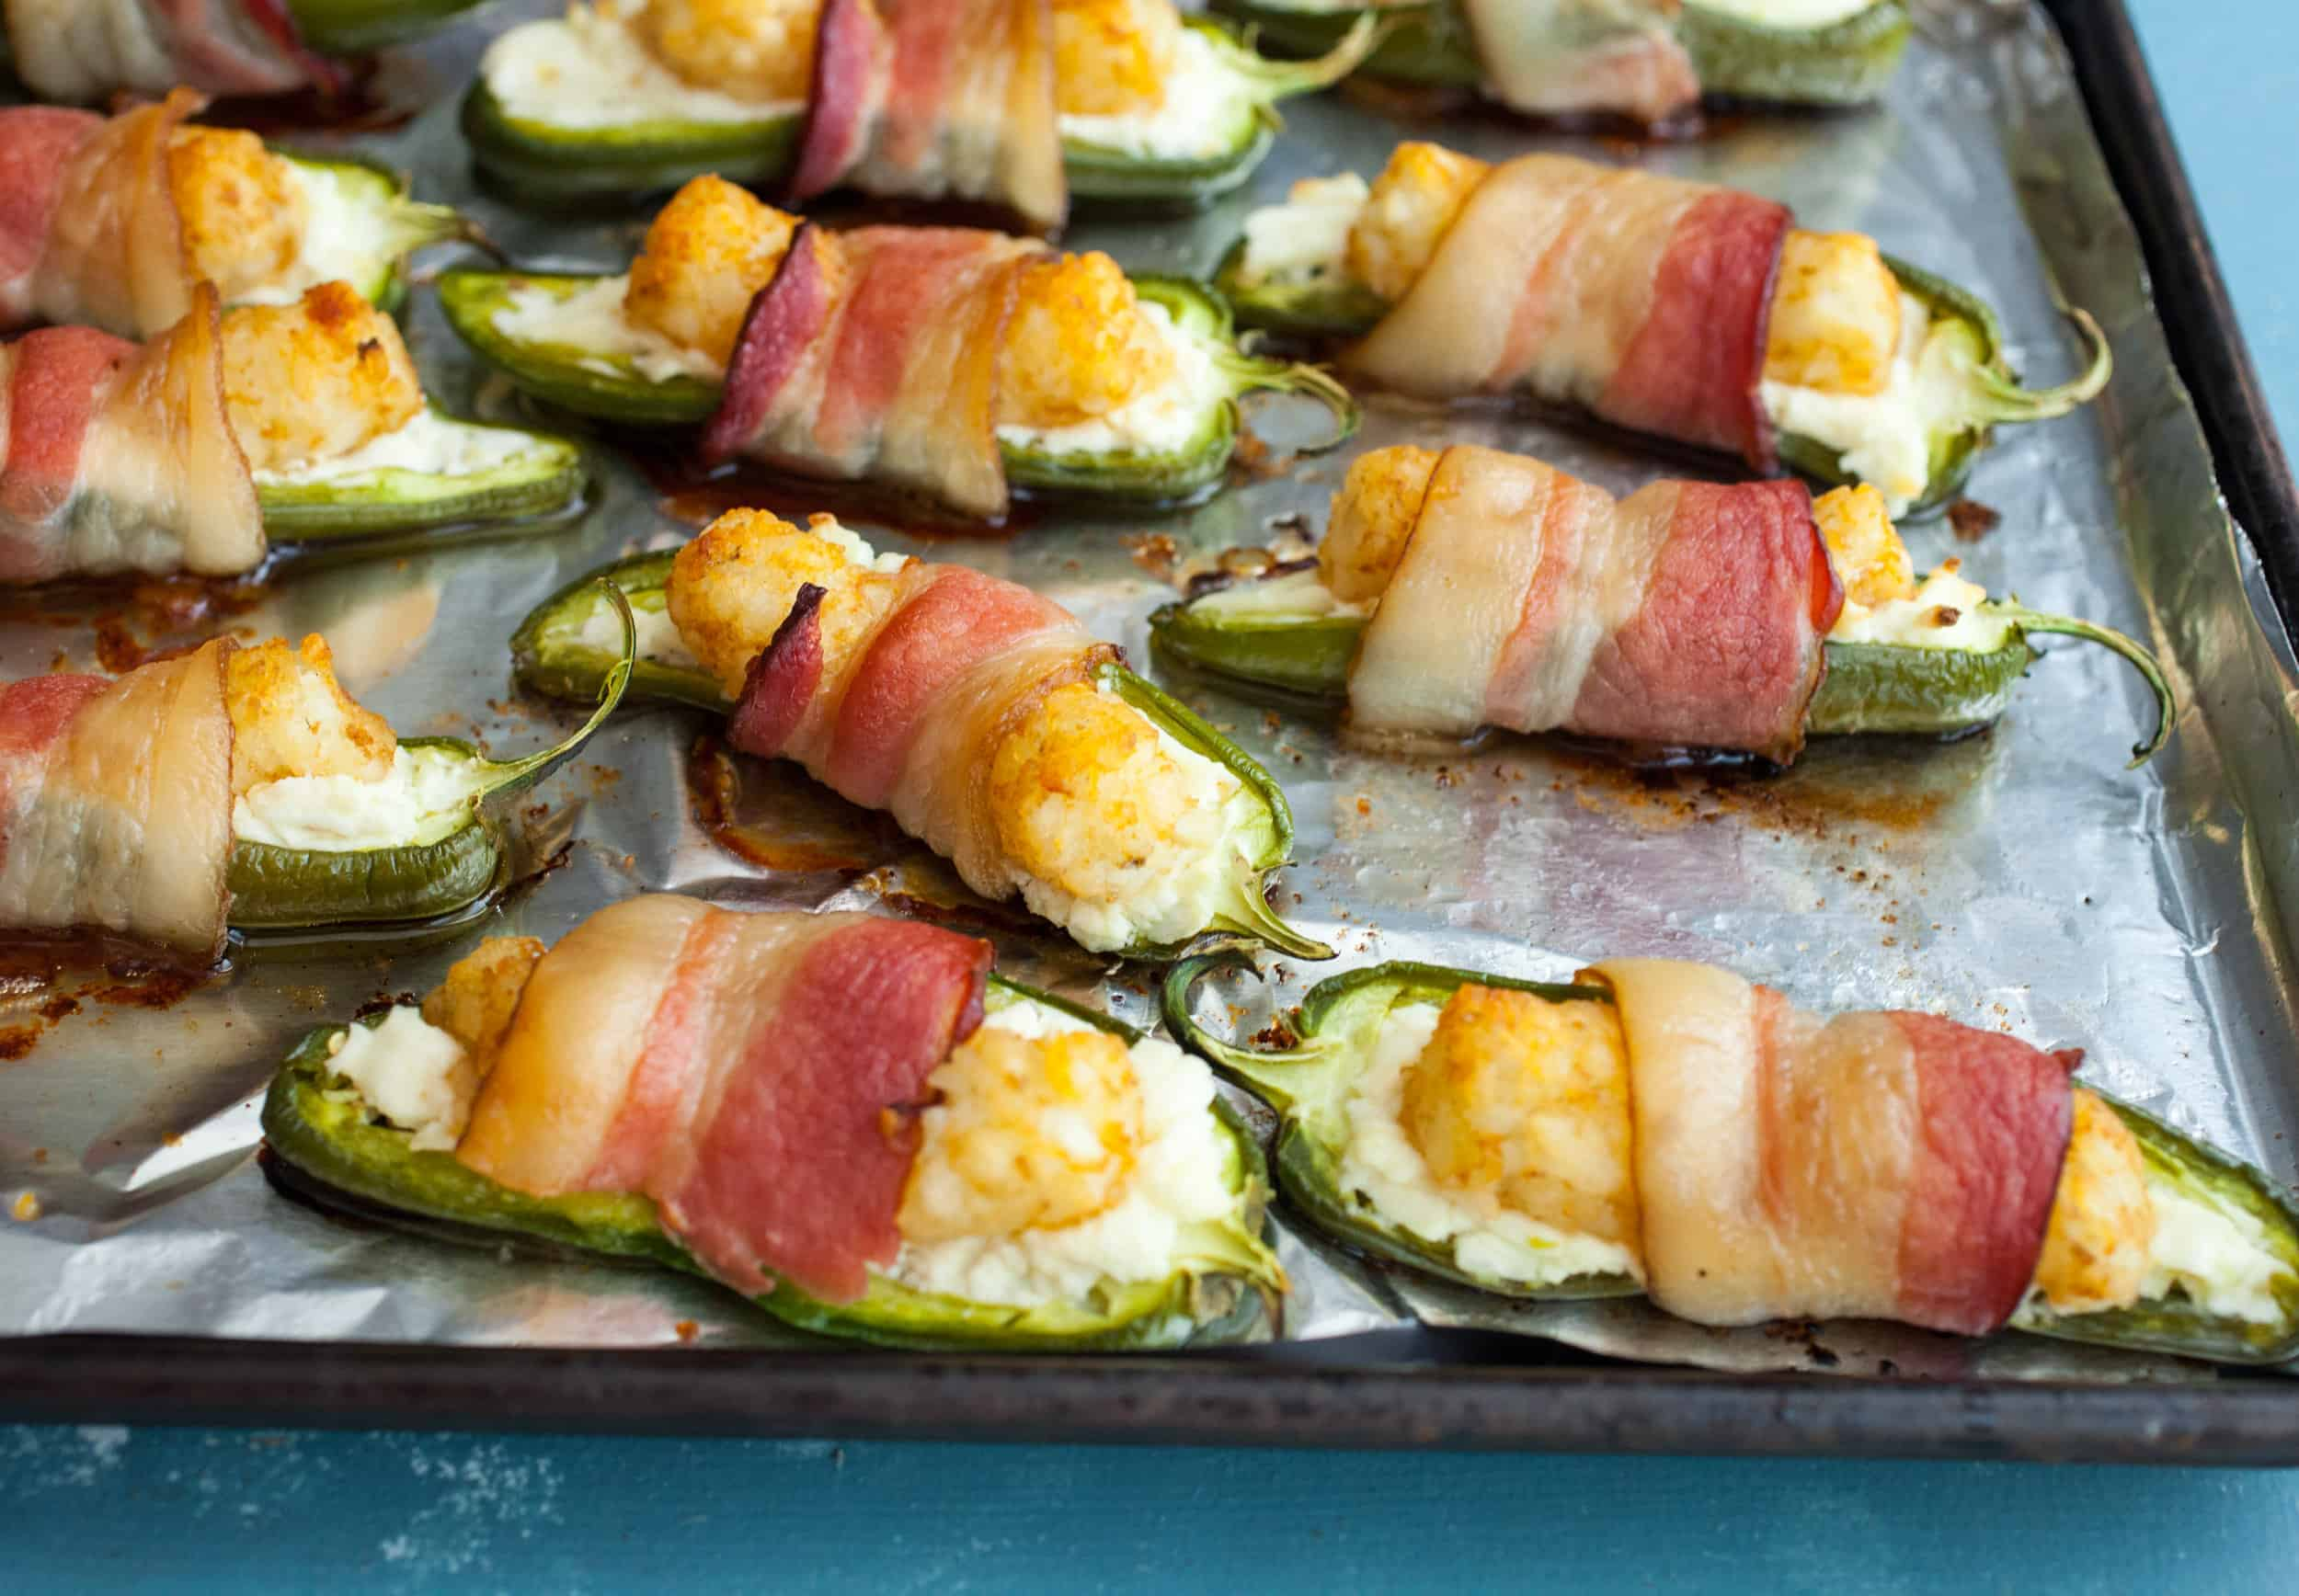 Tater Tot Jalapeno Poppers from Tots!